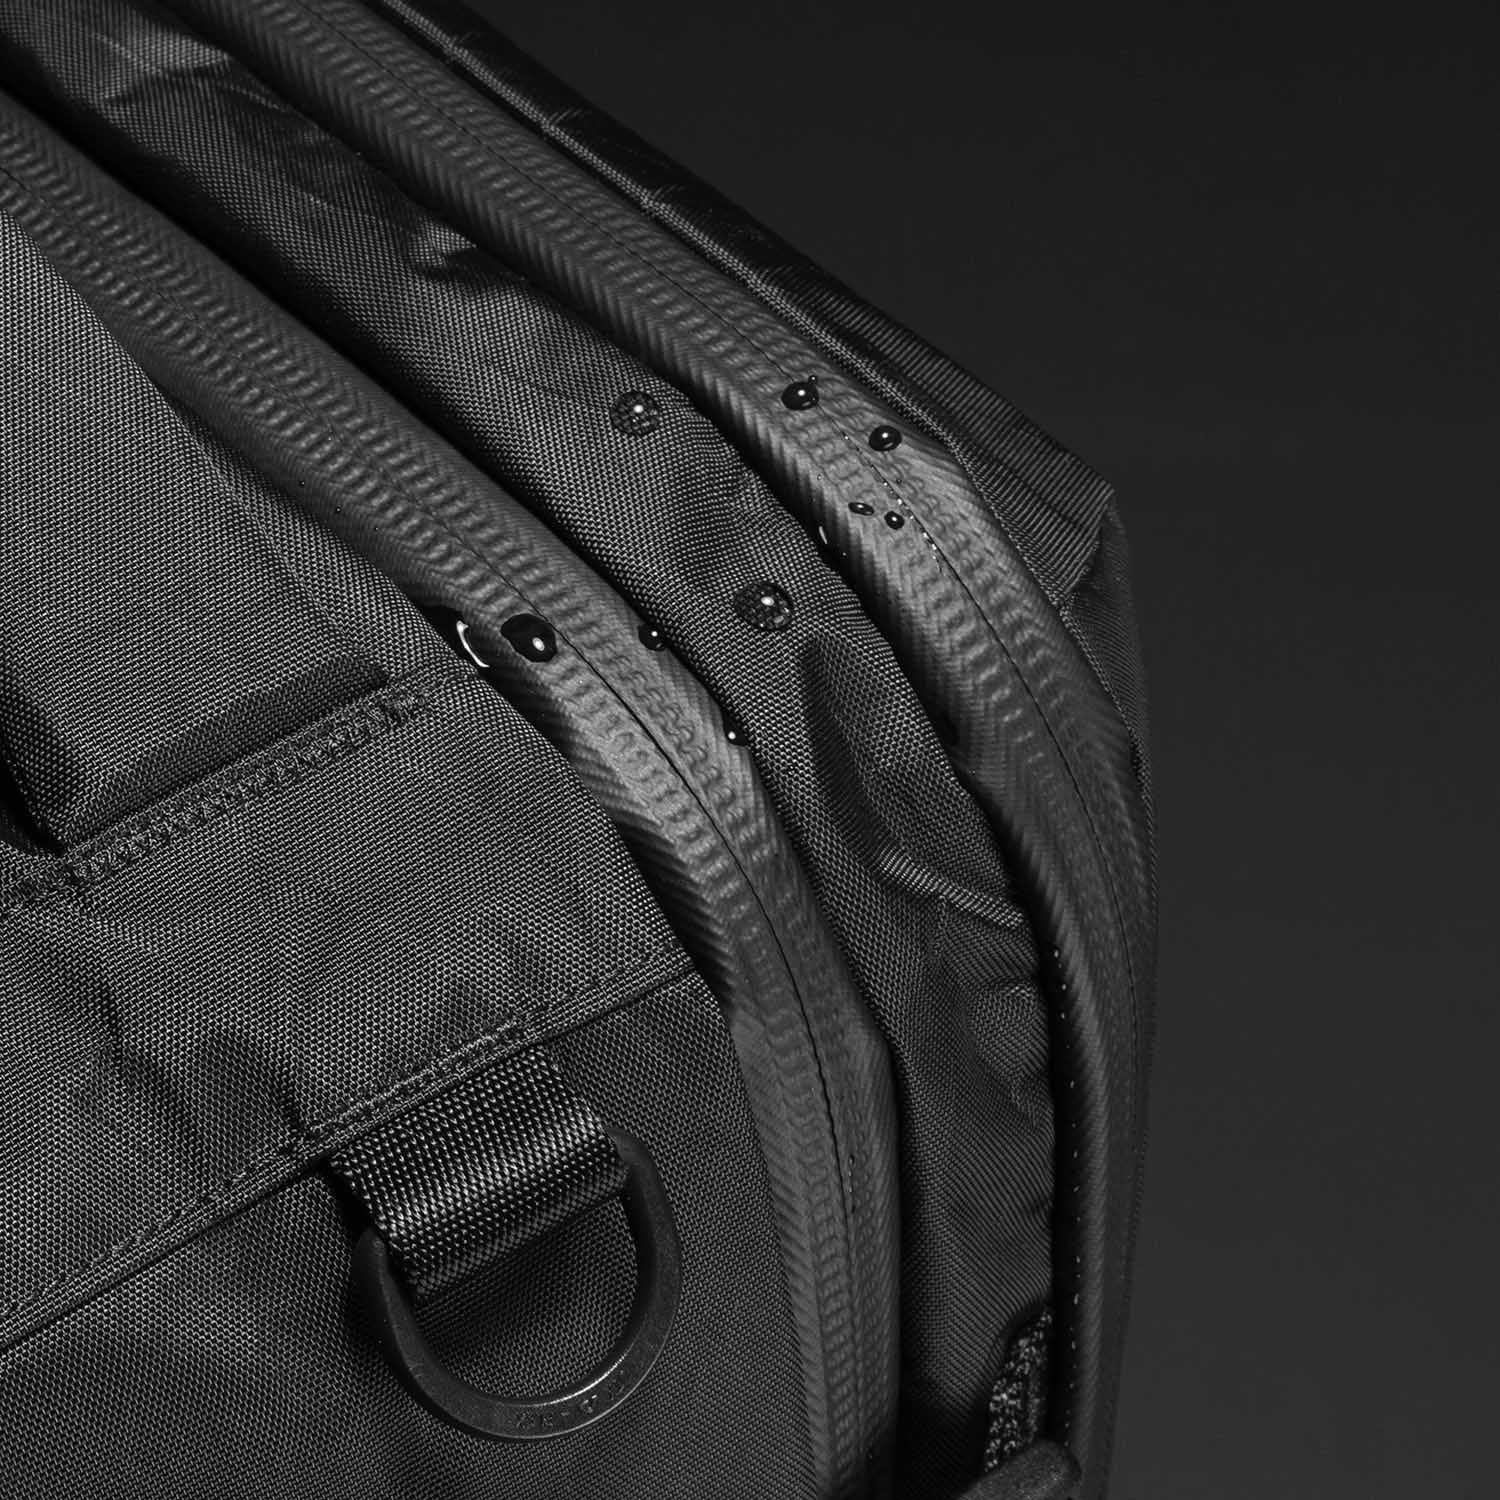 YKK® AquaGuard® zippers on all compartments (except shoe pockets).